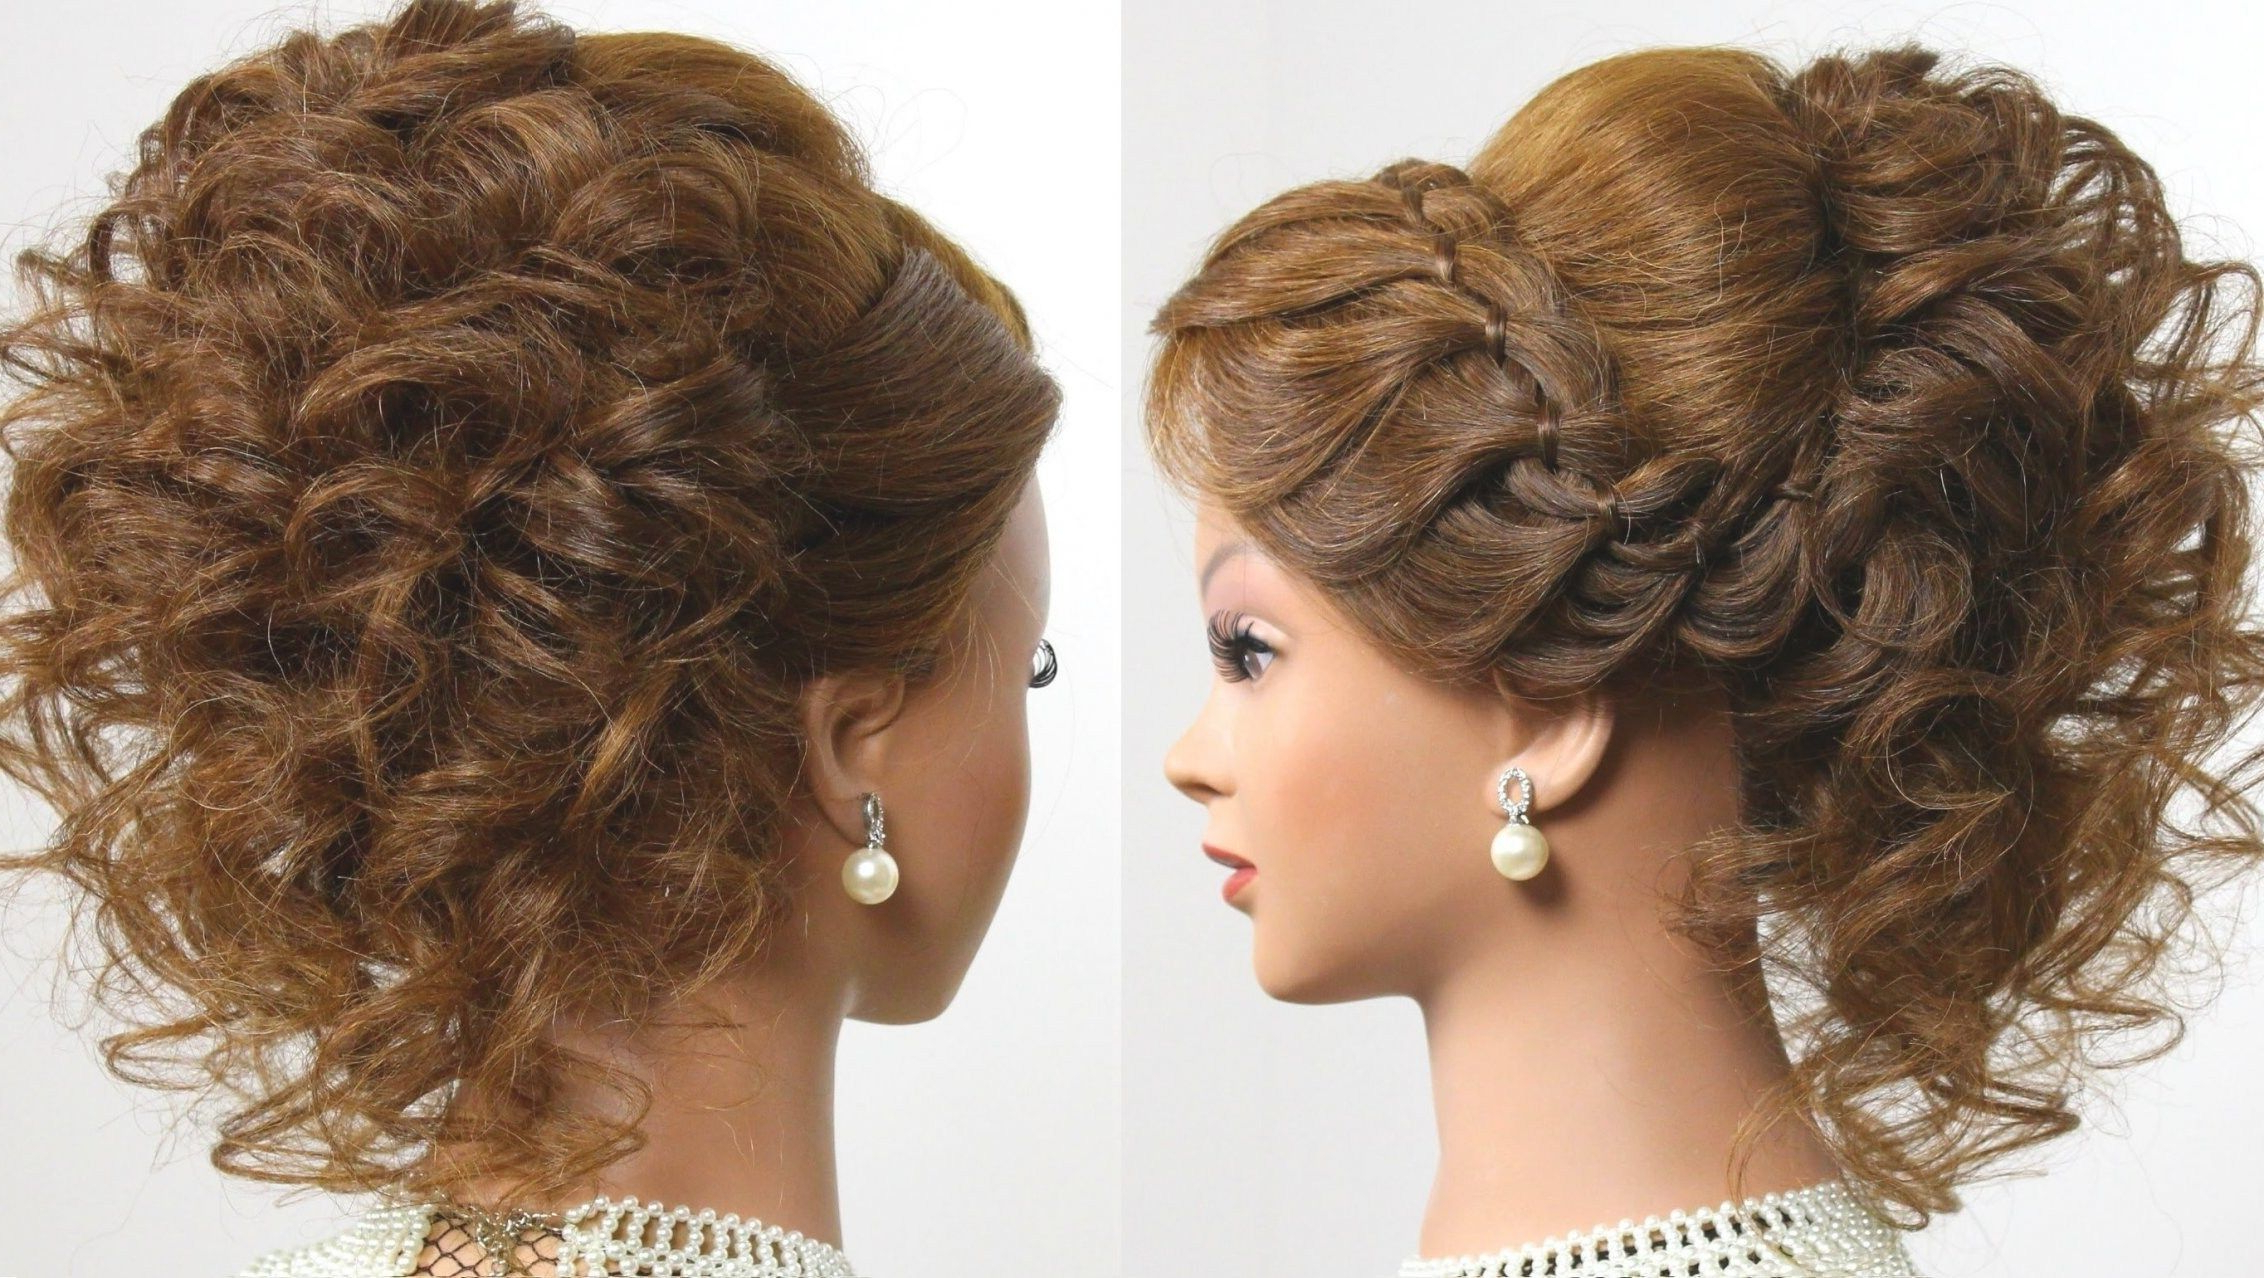 Most Current Medium Hairstyles For Prom Updos Regarding Wedding Hairstyles For Short To Medium Length Hair (View 5 of 20)